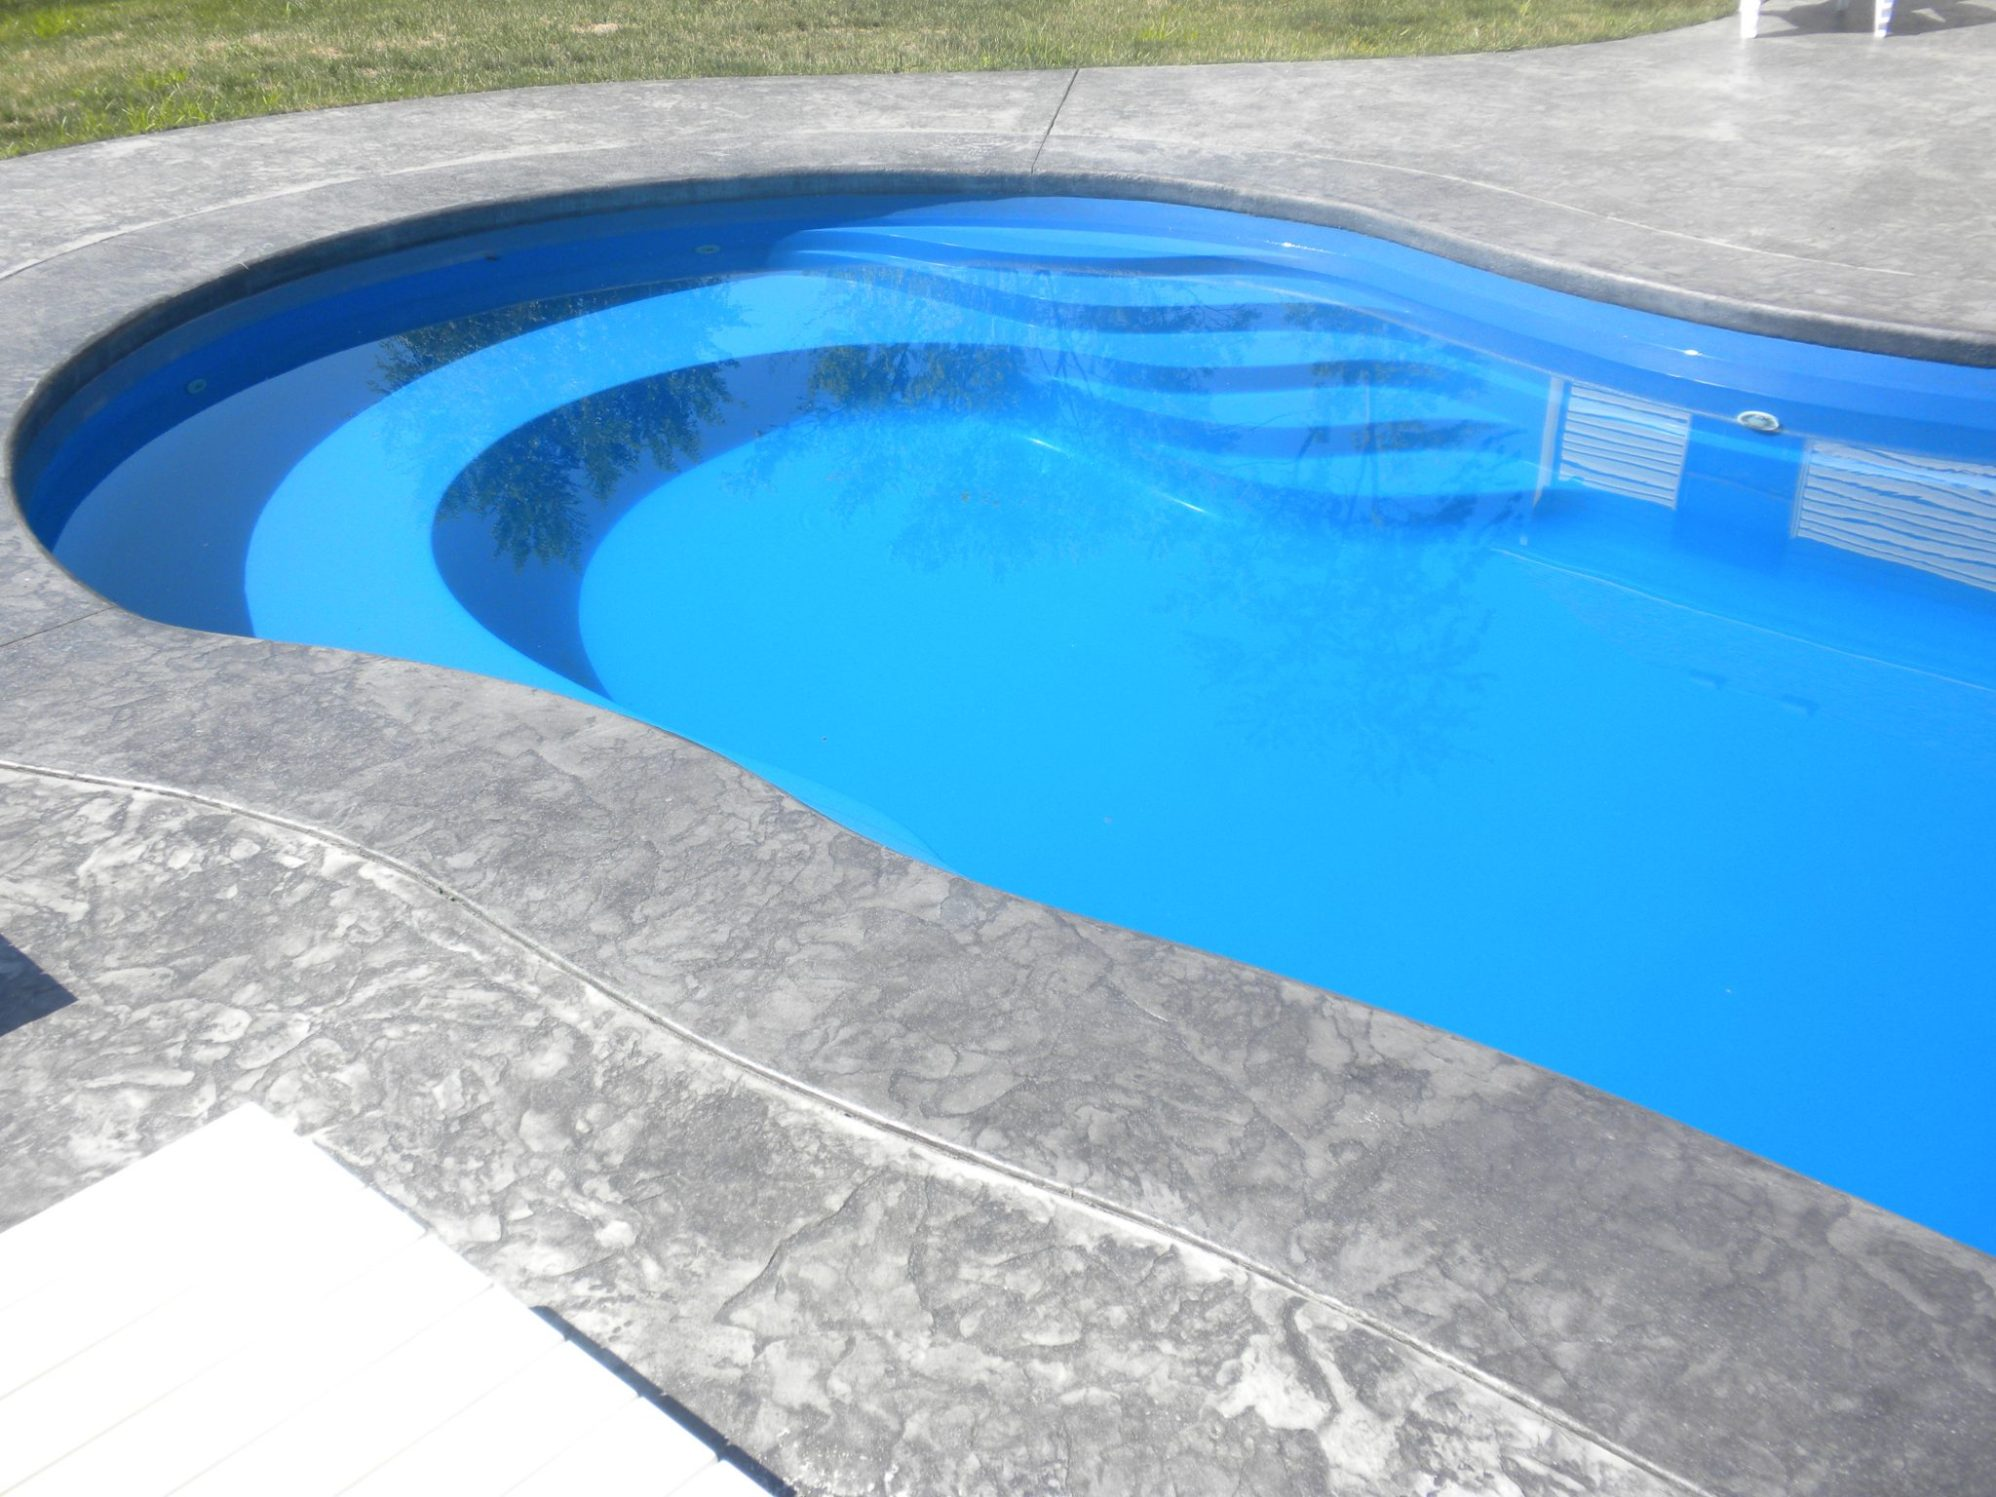 Curved Part of Pool